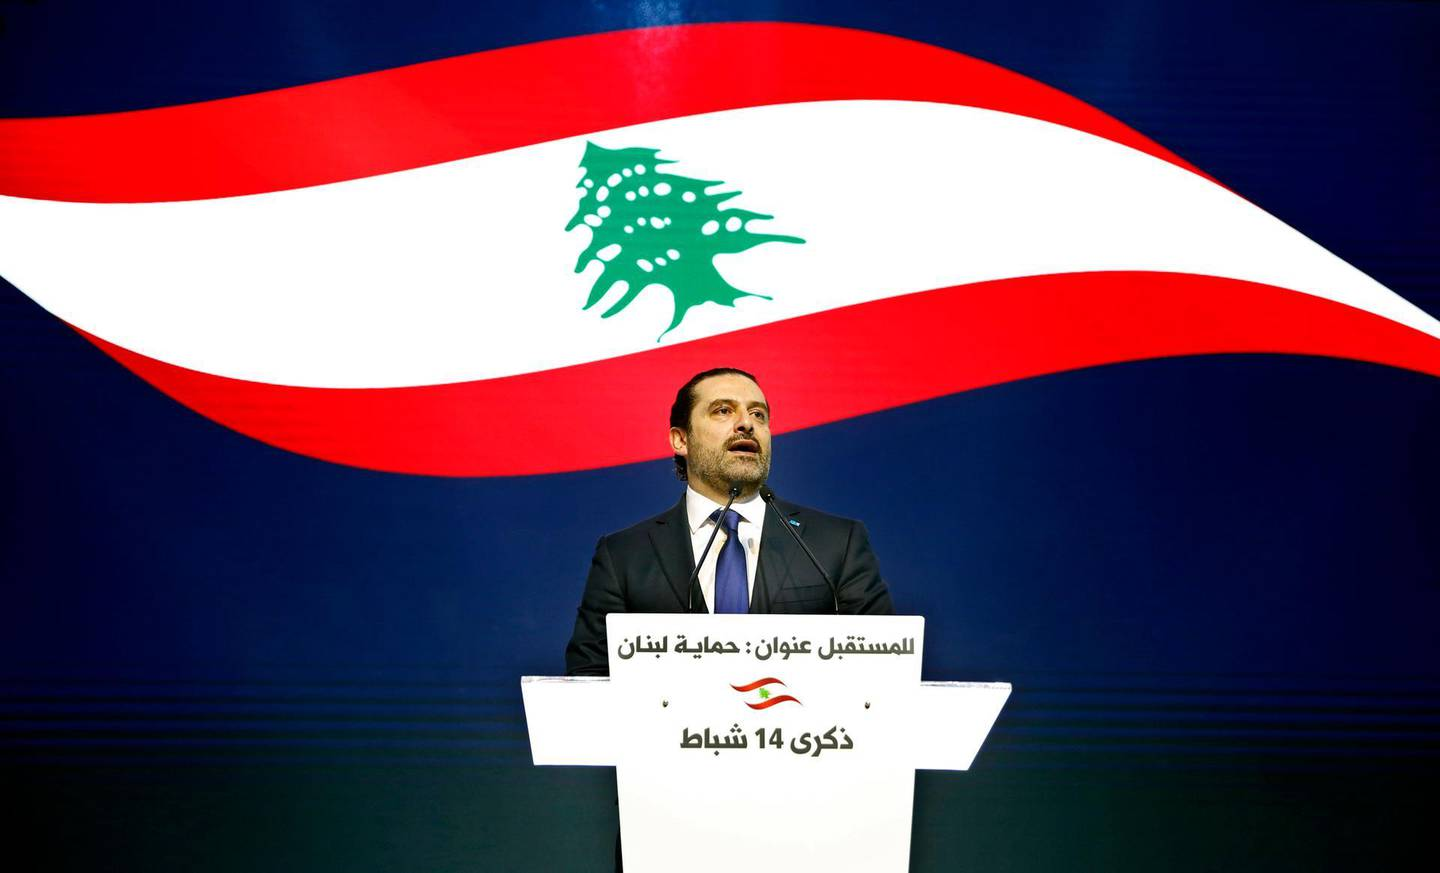 FILE - In this Wednesday, Feb. 14, 2018 file photo, Lebanese Prime Minister Saad Hariri, speaks during a ceremony to mark the 13th anniversary of the assassination of his father, former Prime Minister Rafik Hariri, in Beirut, Lebanon. The office of Lebanon's Prime Minister says he has received an invitation to visit Saudi Arabia from an envoy of the Gulf monarch. It's the first such gesture following tension between the two countries in the wake of the now-reversed resignation of Saad Hariri. (AP Photo/Bilal Hussein, File)